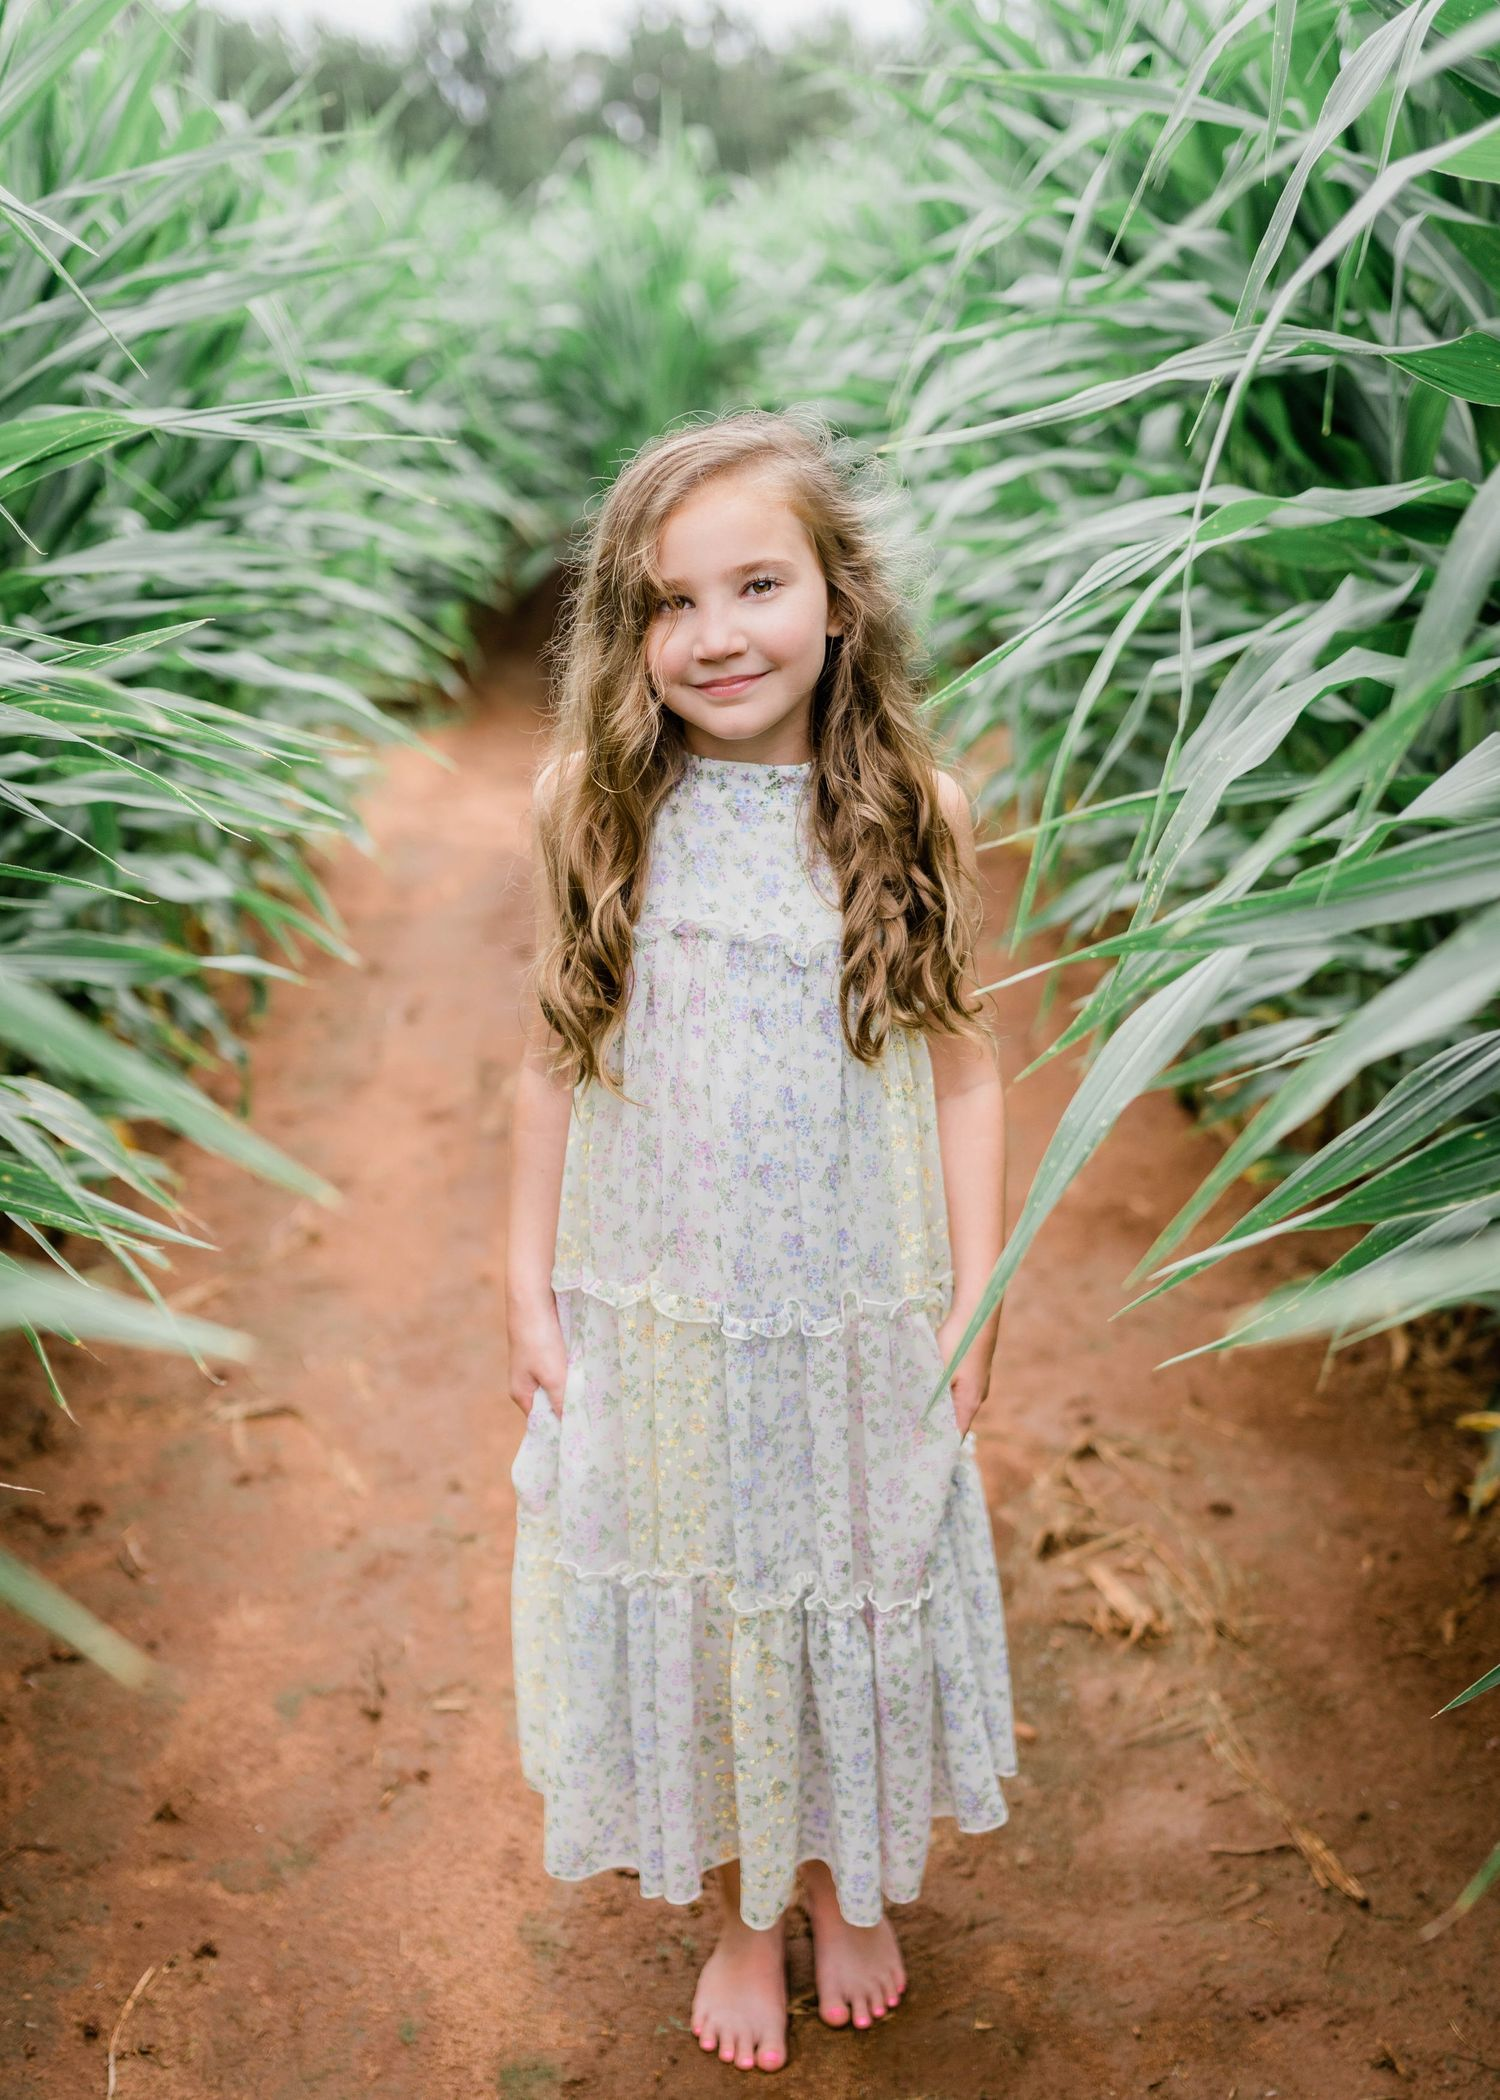 Cornfield County Farms Pumpkin Patch Photoshoot | Wetumpka, Alabama Portrait Photographer